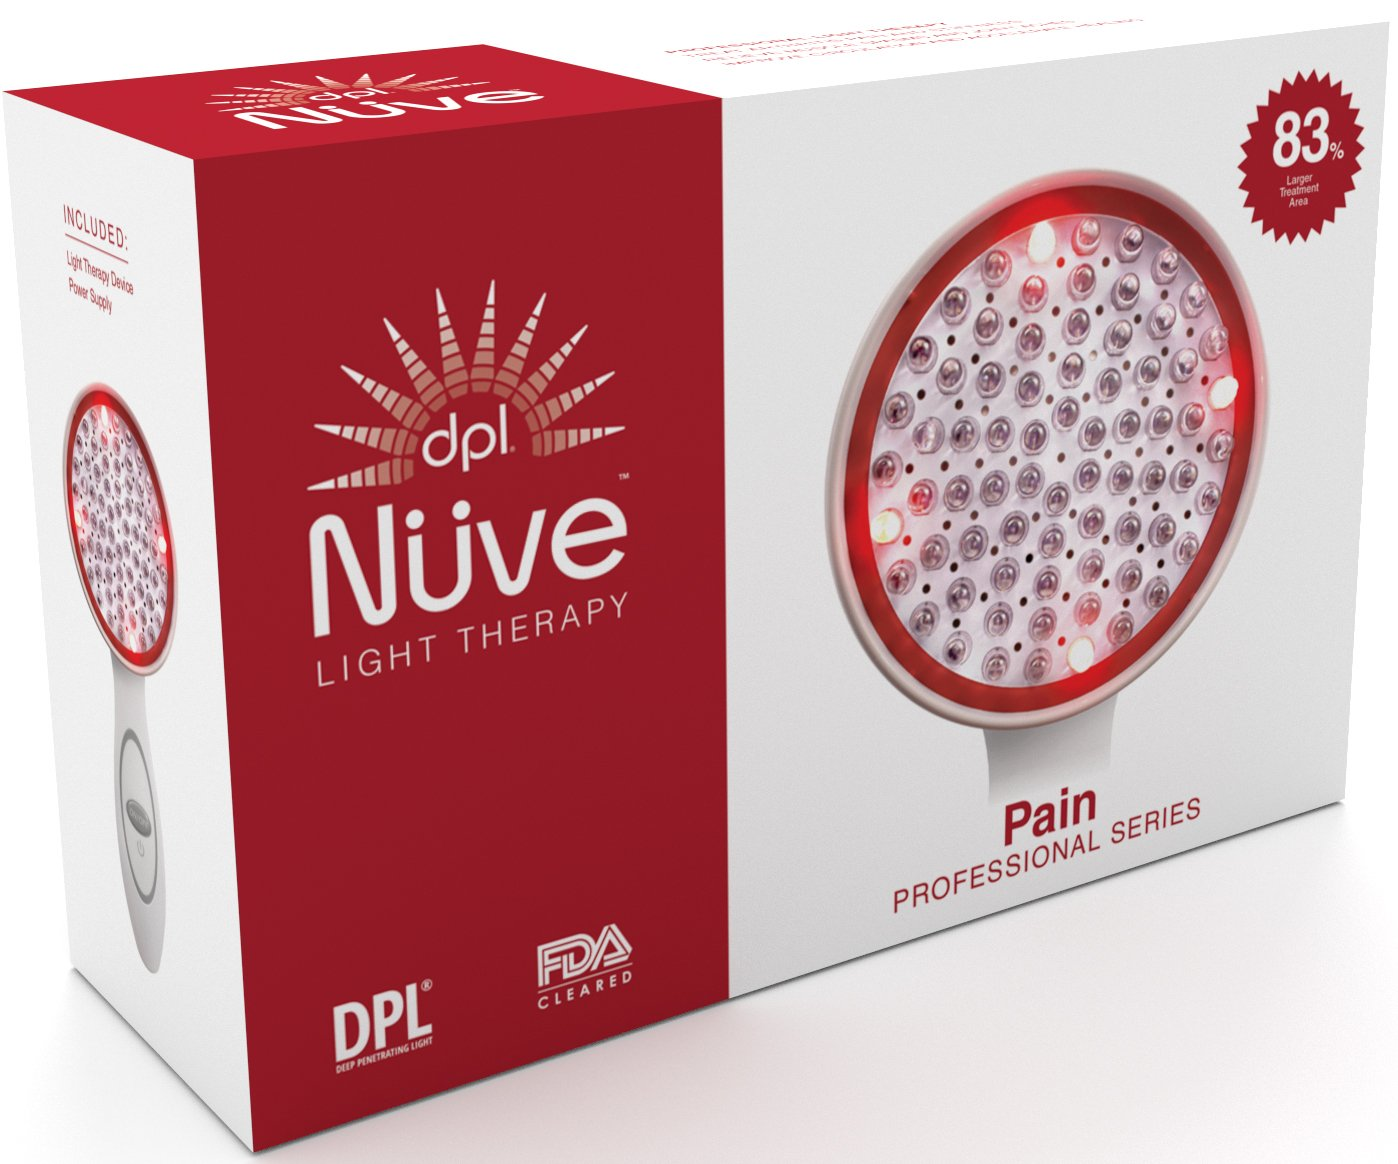 LED Technologies, DPL Nuve N72 XL Pain Relief, Light Therapy Handheld System by LED TECHNOLOGIES (Image #3)